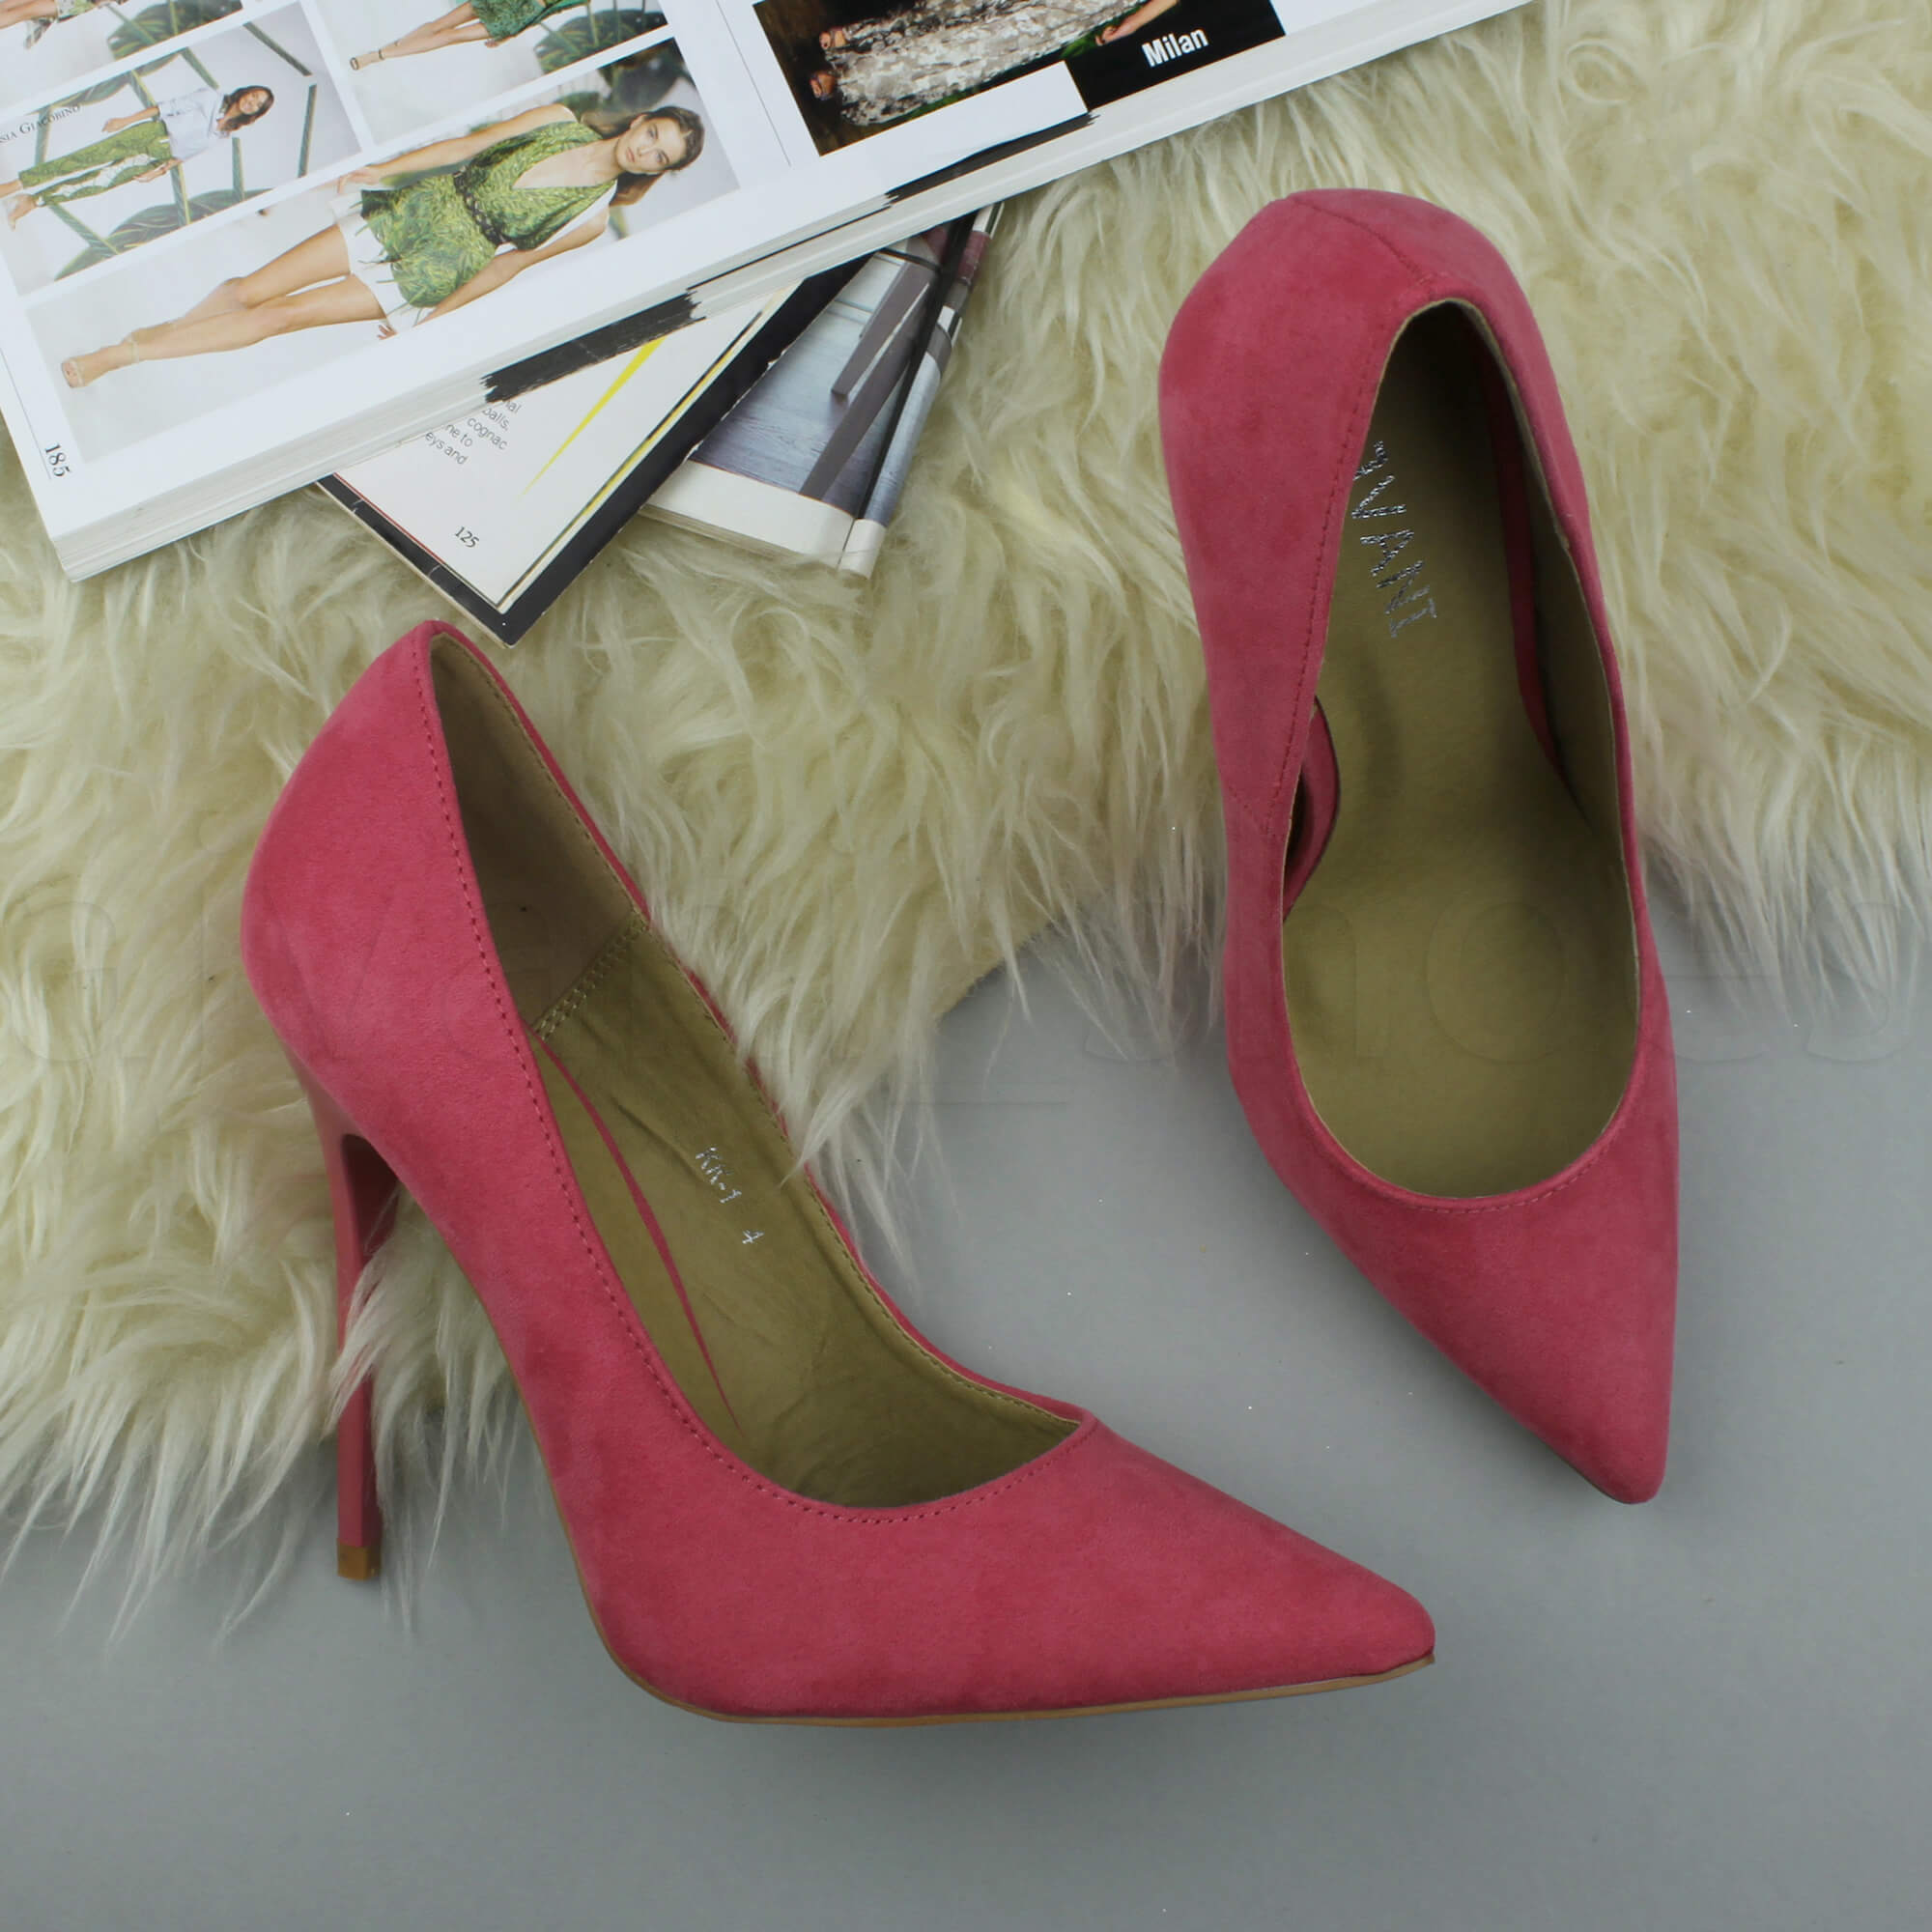 WOMENS-LADIES-HIGH-HEEL-POINTED-CONTRAST-COURT-SMART-PARTY-WORK-SHOES-PUMPS-SIZE thumbnail 139